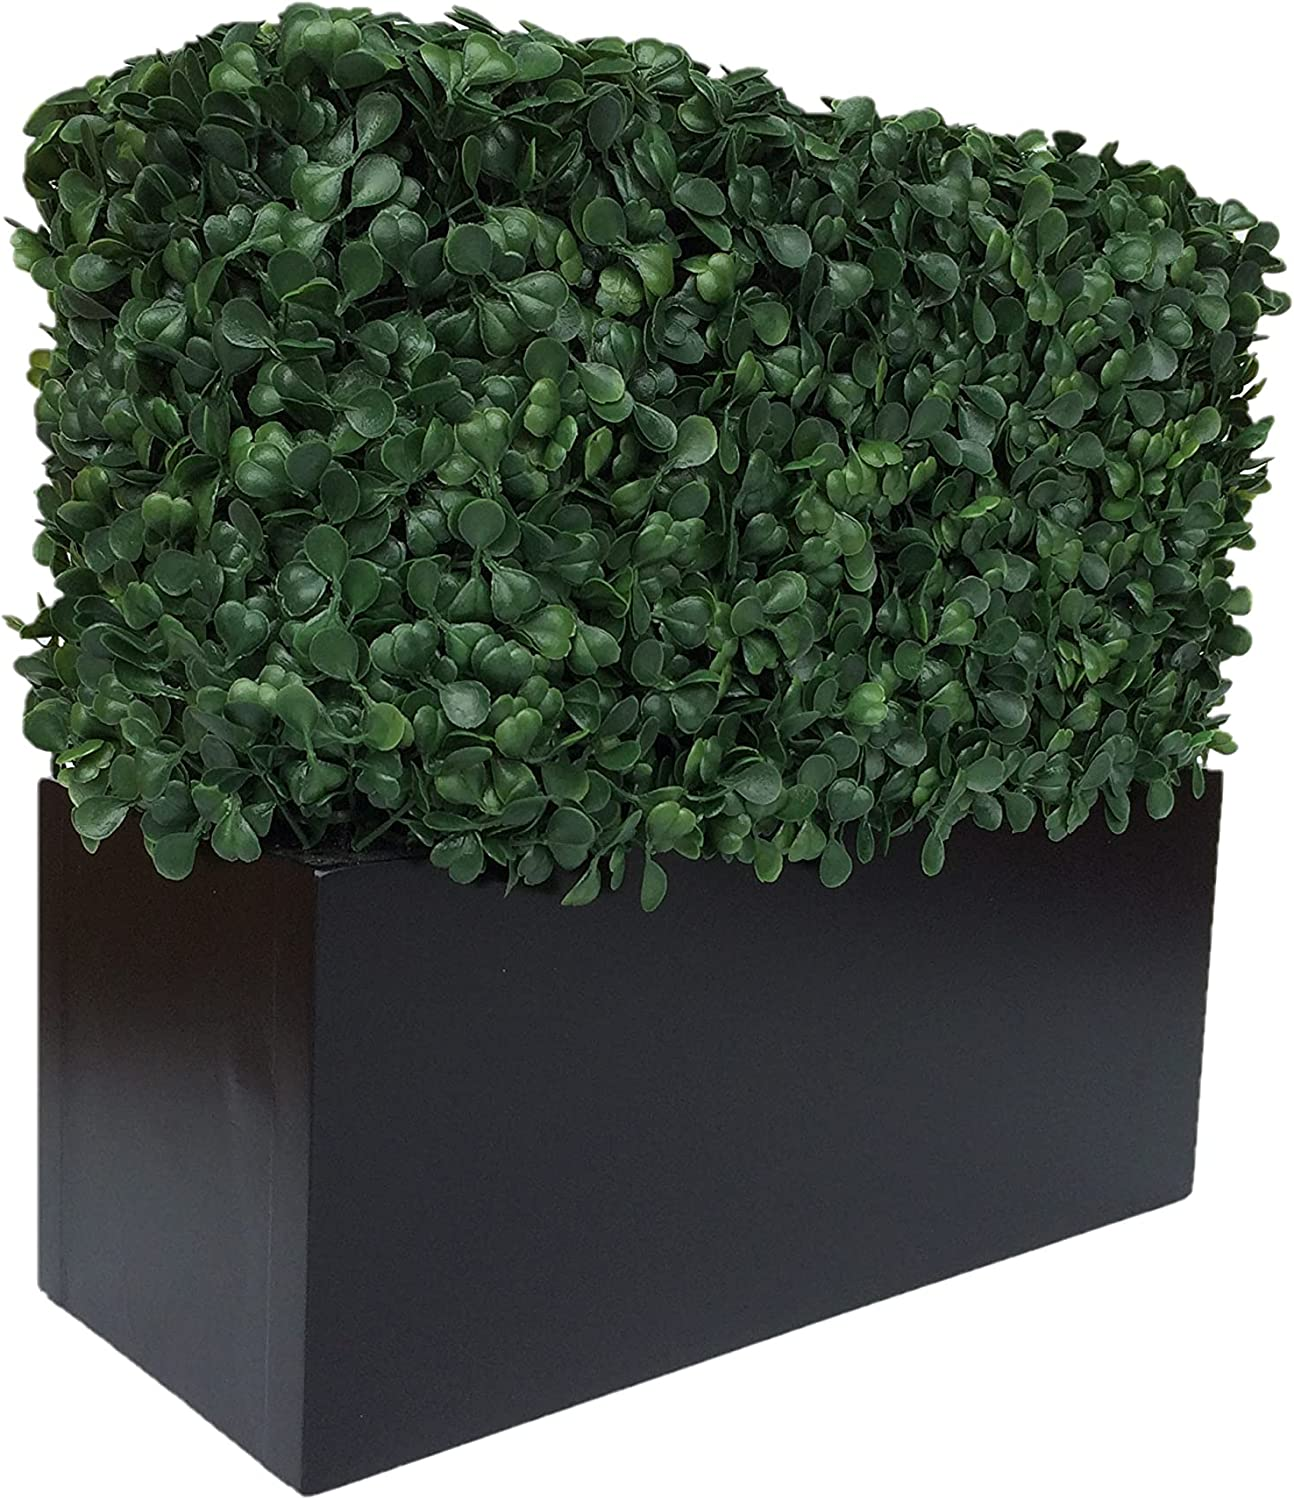 Artificial Boxwood Topiary Plant Shrub Planter Ranking TOP8 Denver Mall 1 Tabletop Indoor